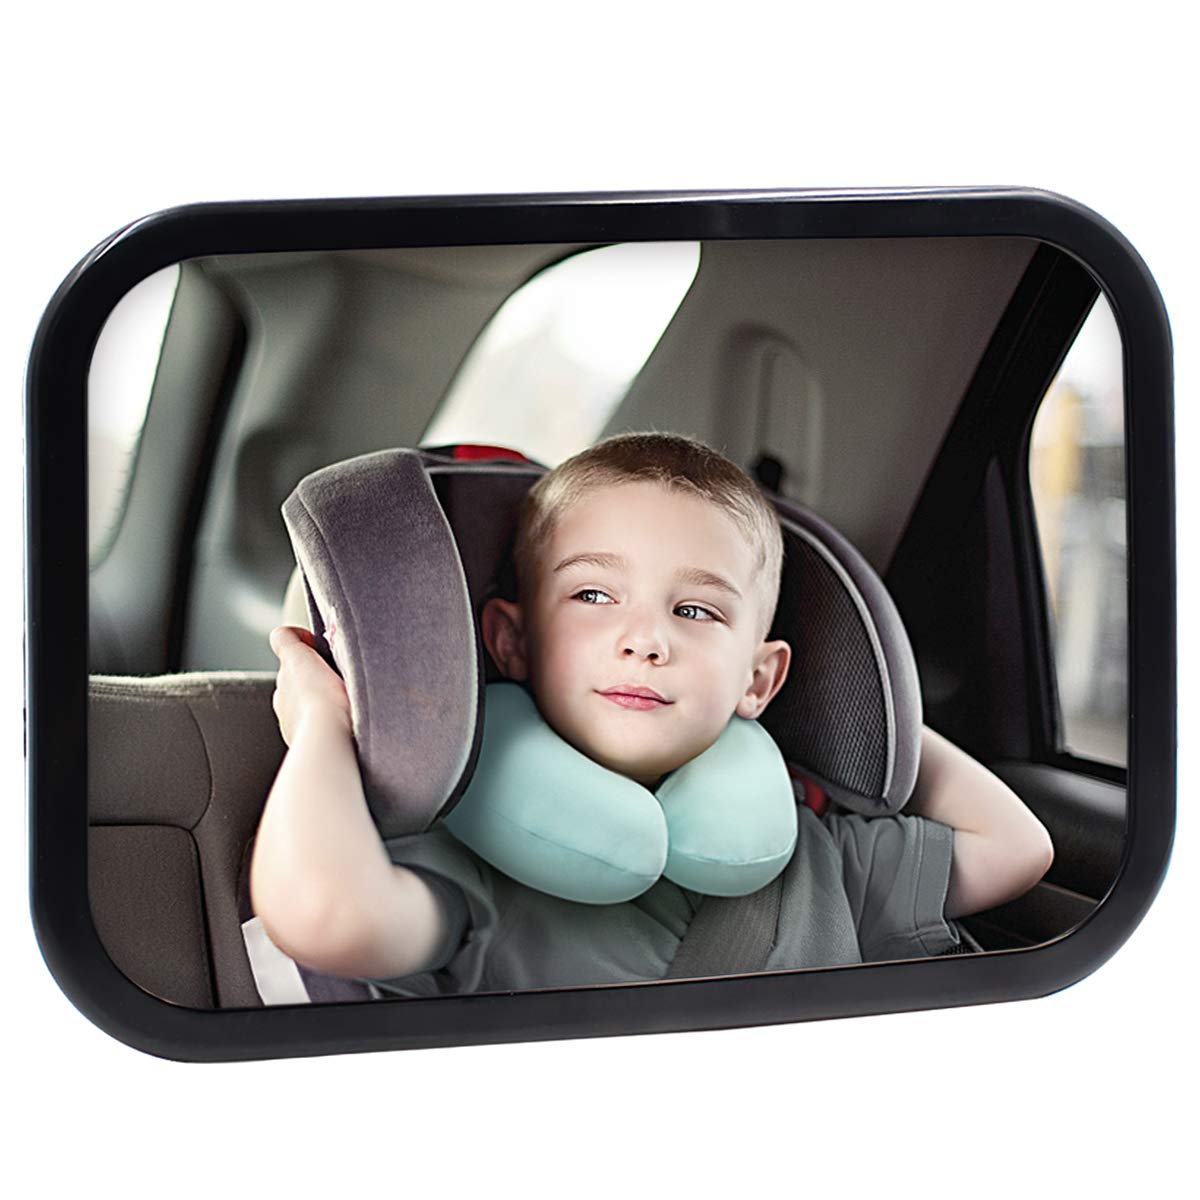 Safe Baby Car Mirror for Rear View Facing Back Seat for Infant Child,Fully Assembled and Adjustable,Backseat Shatterproof Mirror with Perfect Reflection by Coindivi